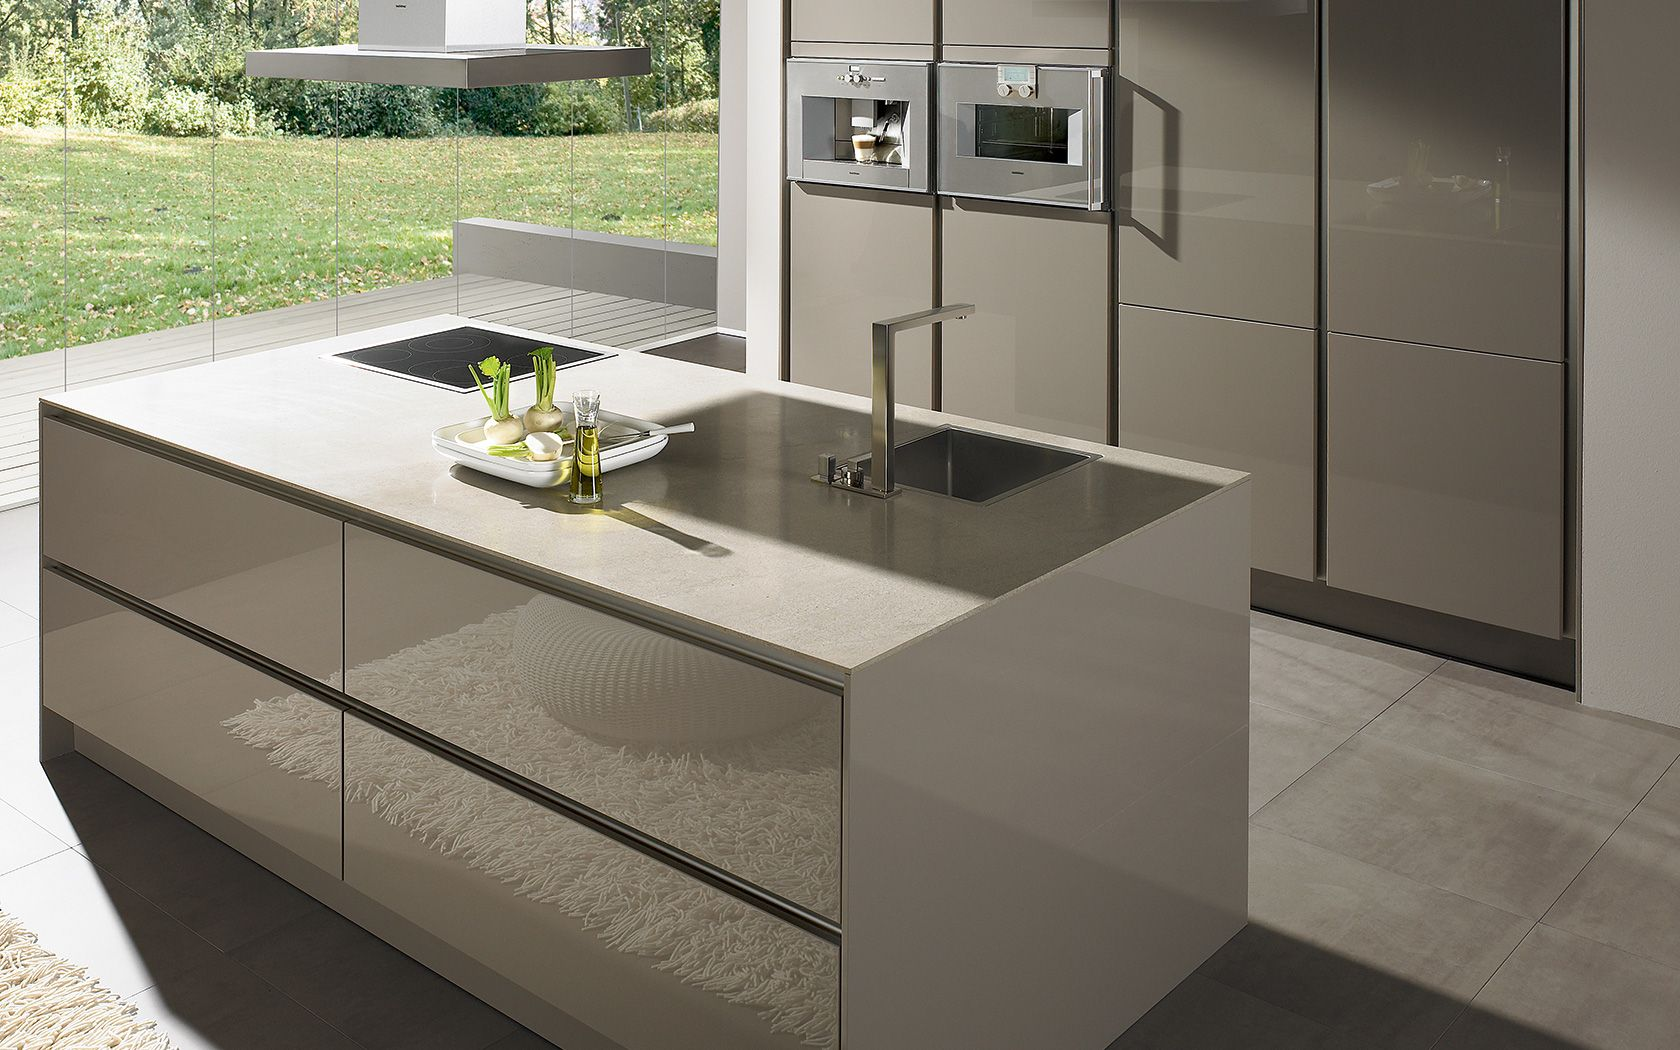 Keuken Modern Wit Hout : Pin by KOOLSCHIJN on Koolschijn SieMatic Modern Pinterest